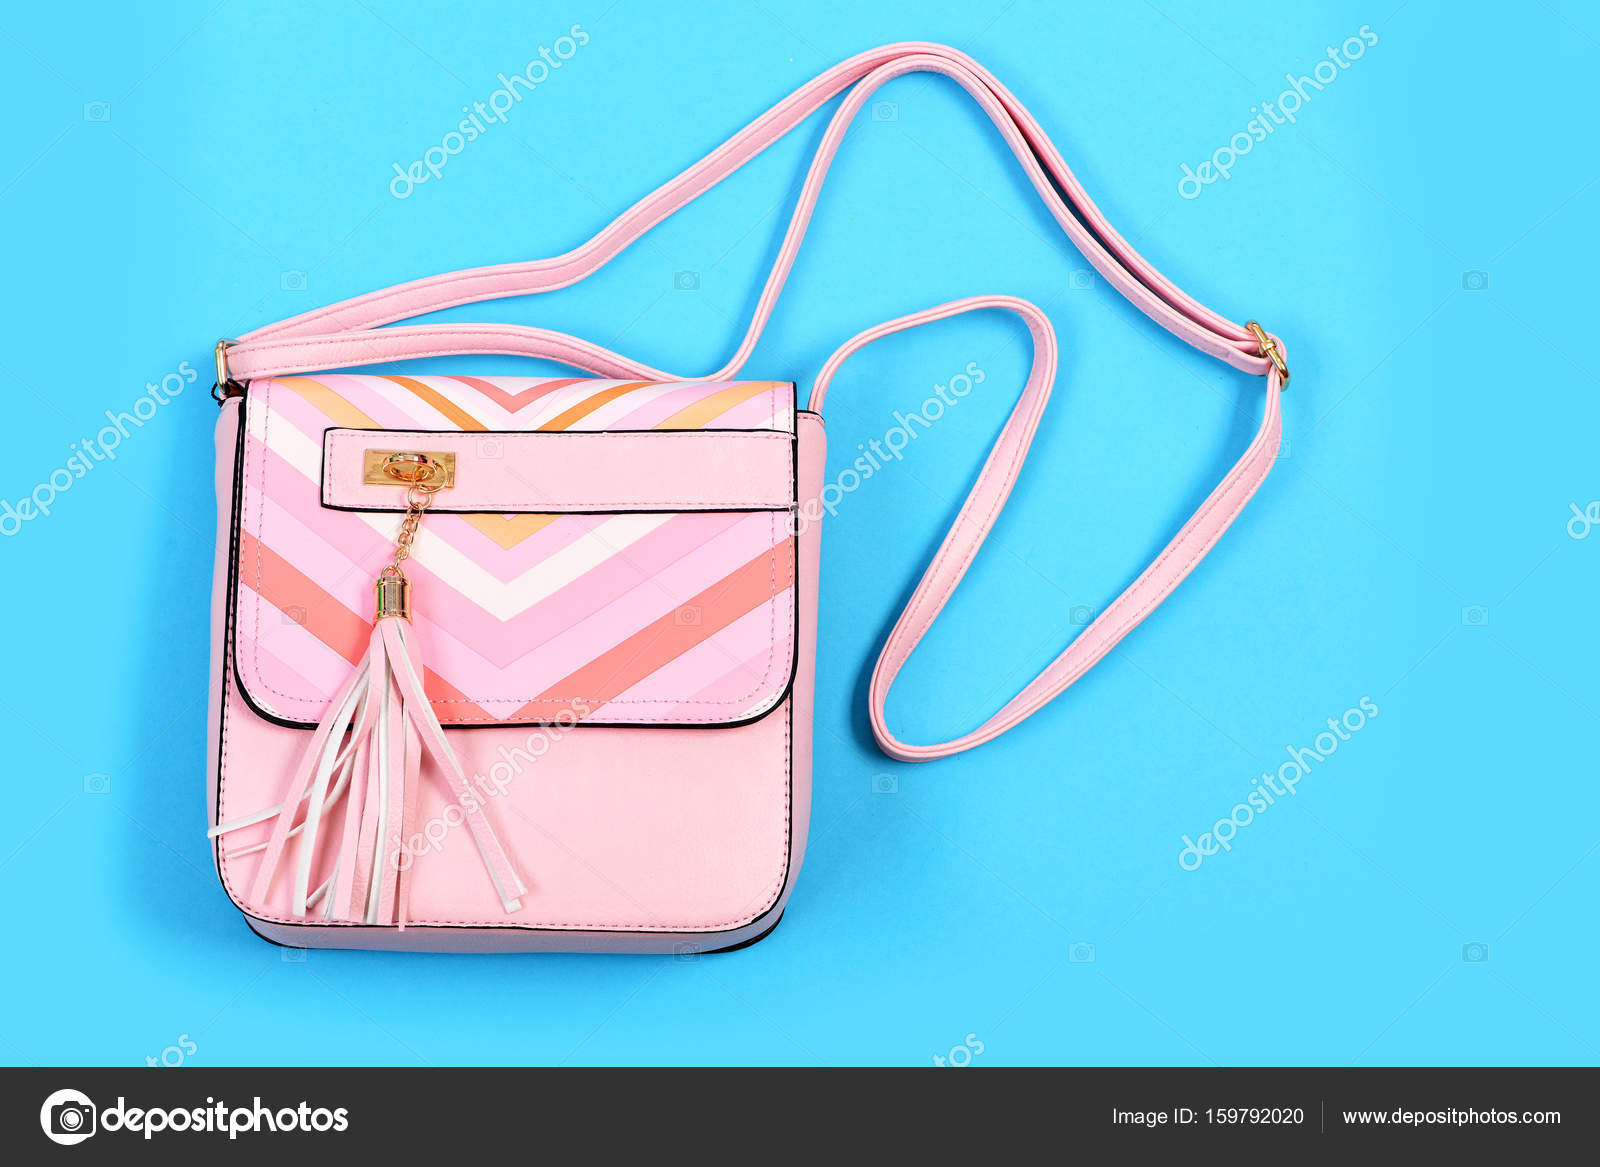 Purse In Light Pink Color With Stripes Handbag For Women Stock